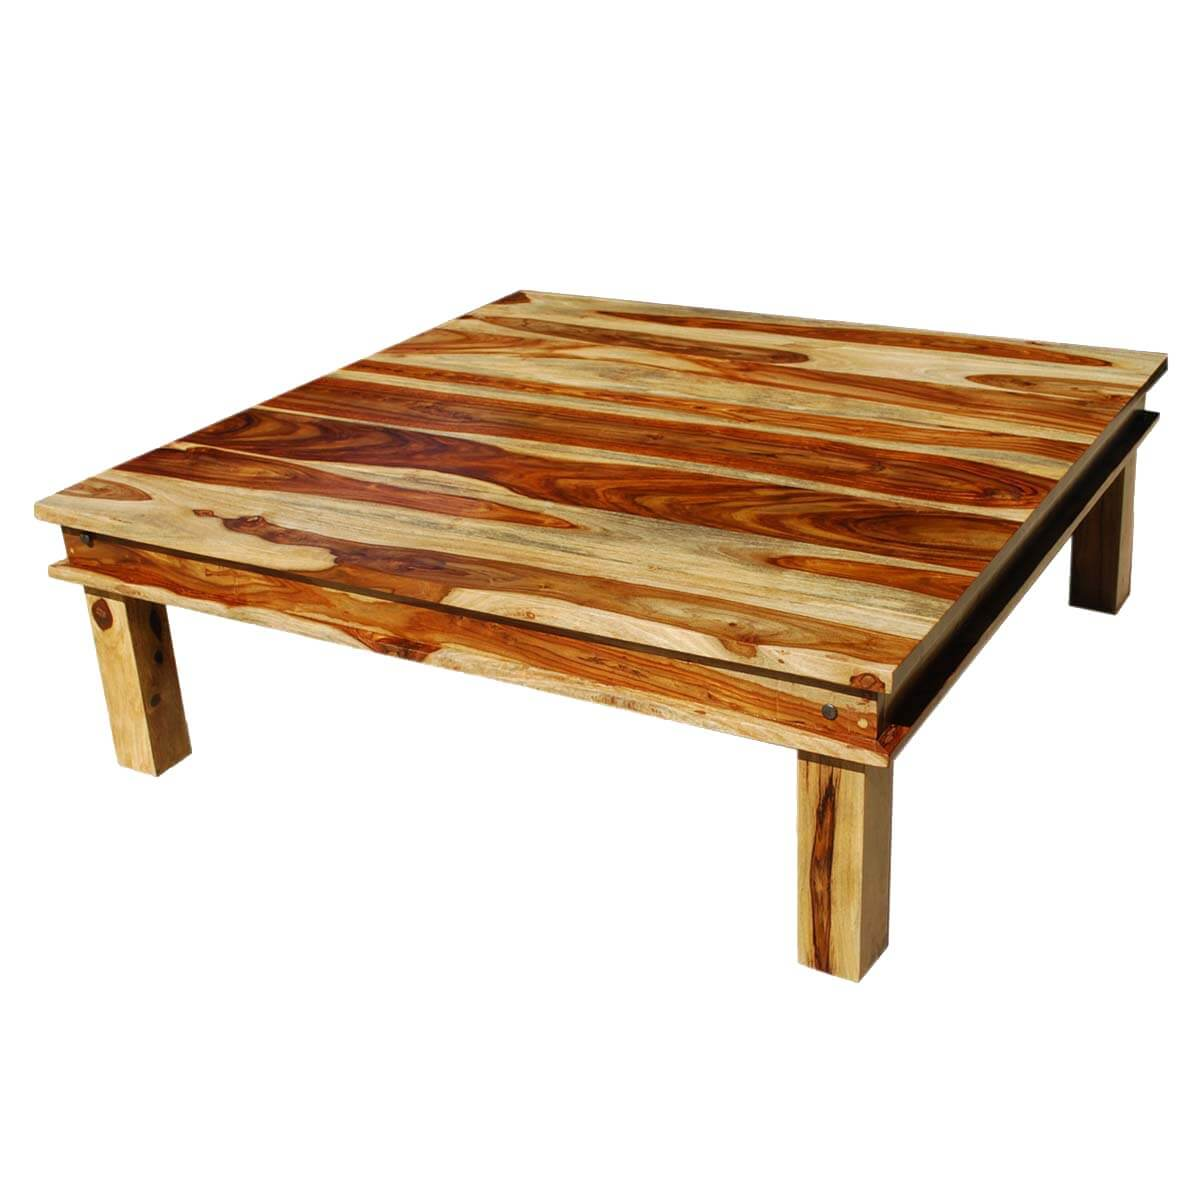 Large square wood rustic coffee table for Oversized coffee tables